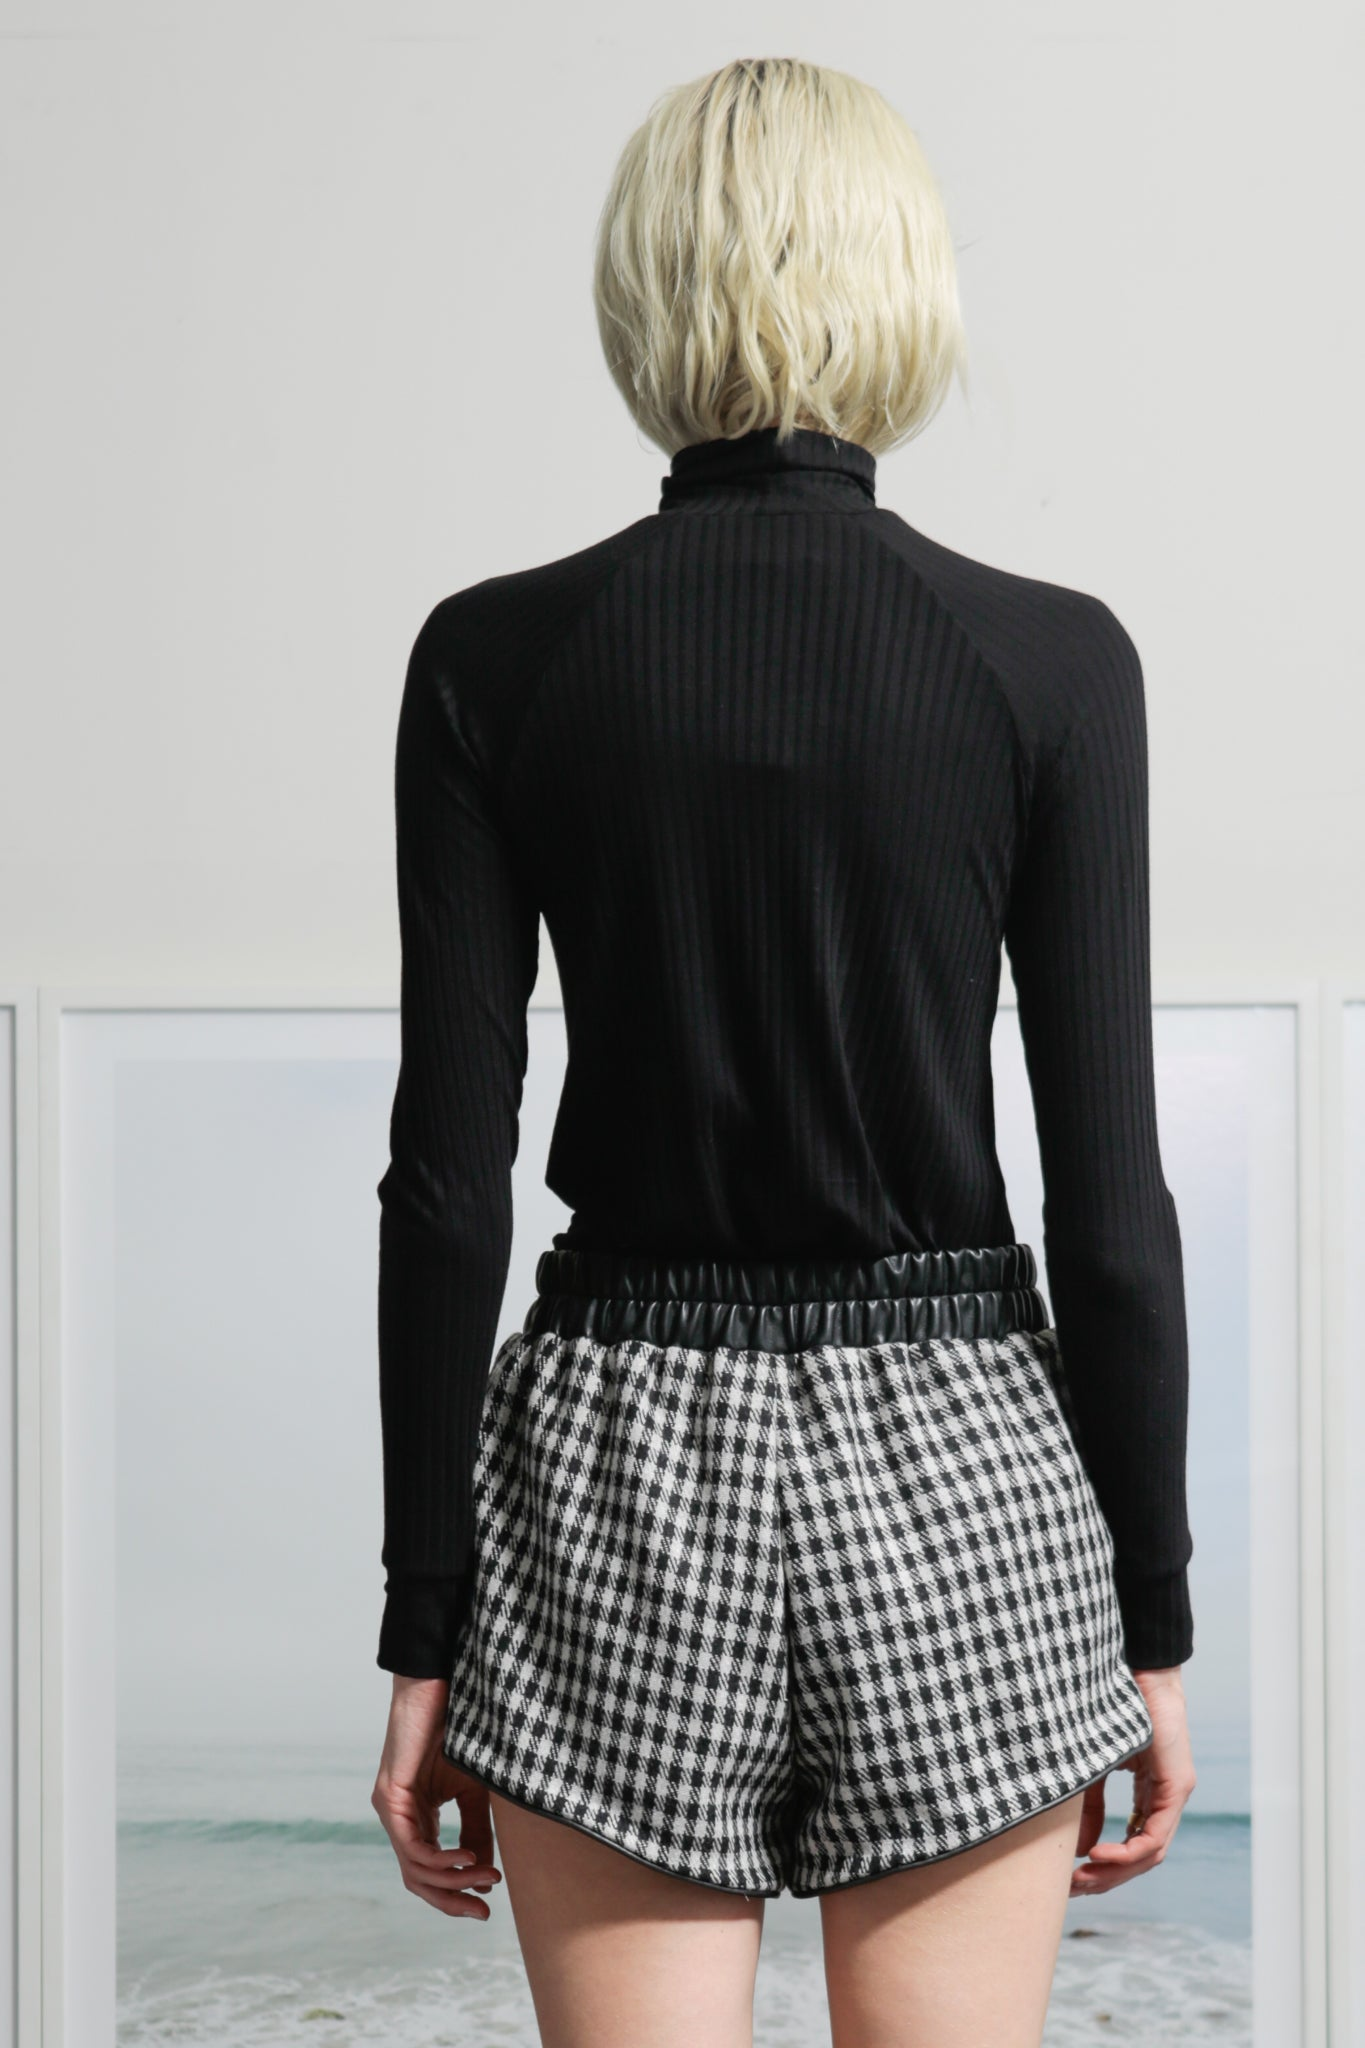 Model wears X-small Azalea Short - CHECK by Heidi Merrick (Back)